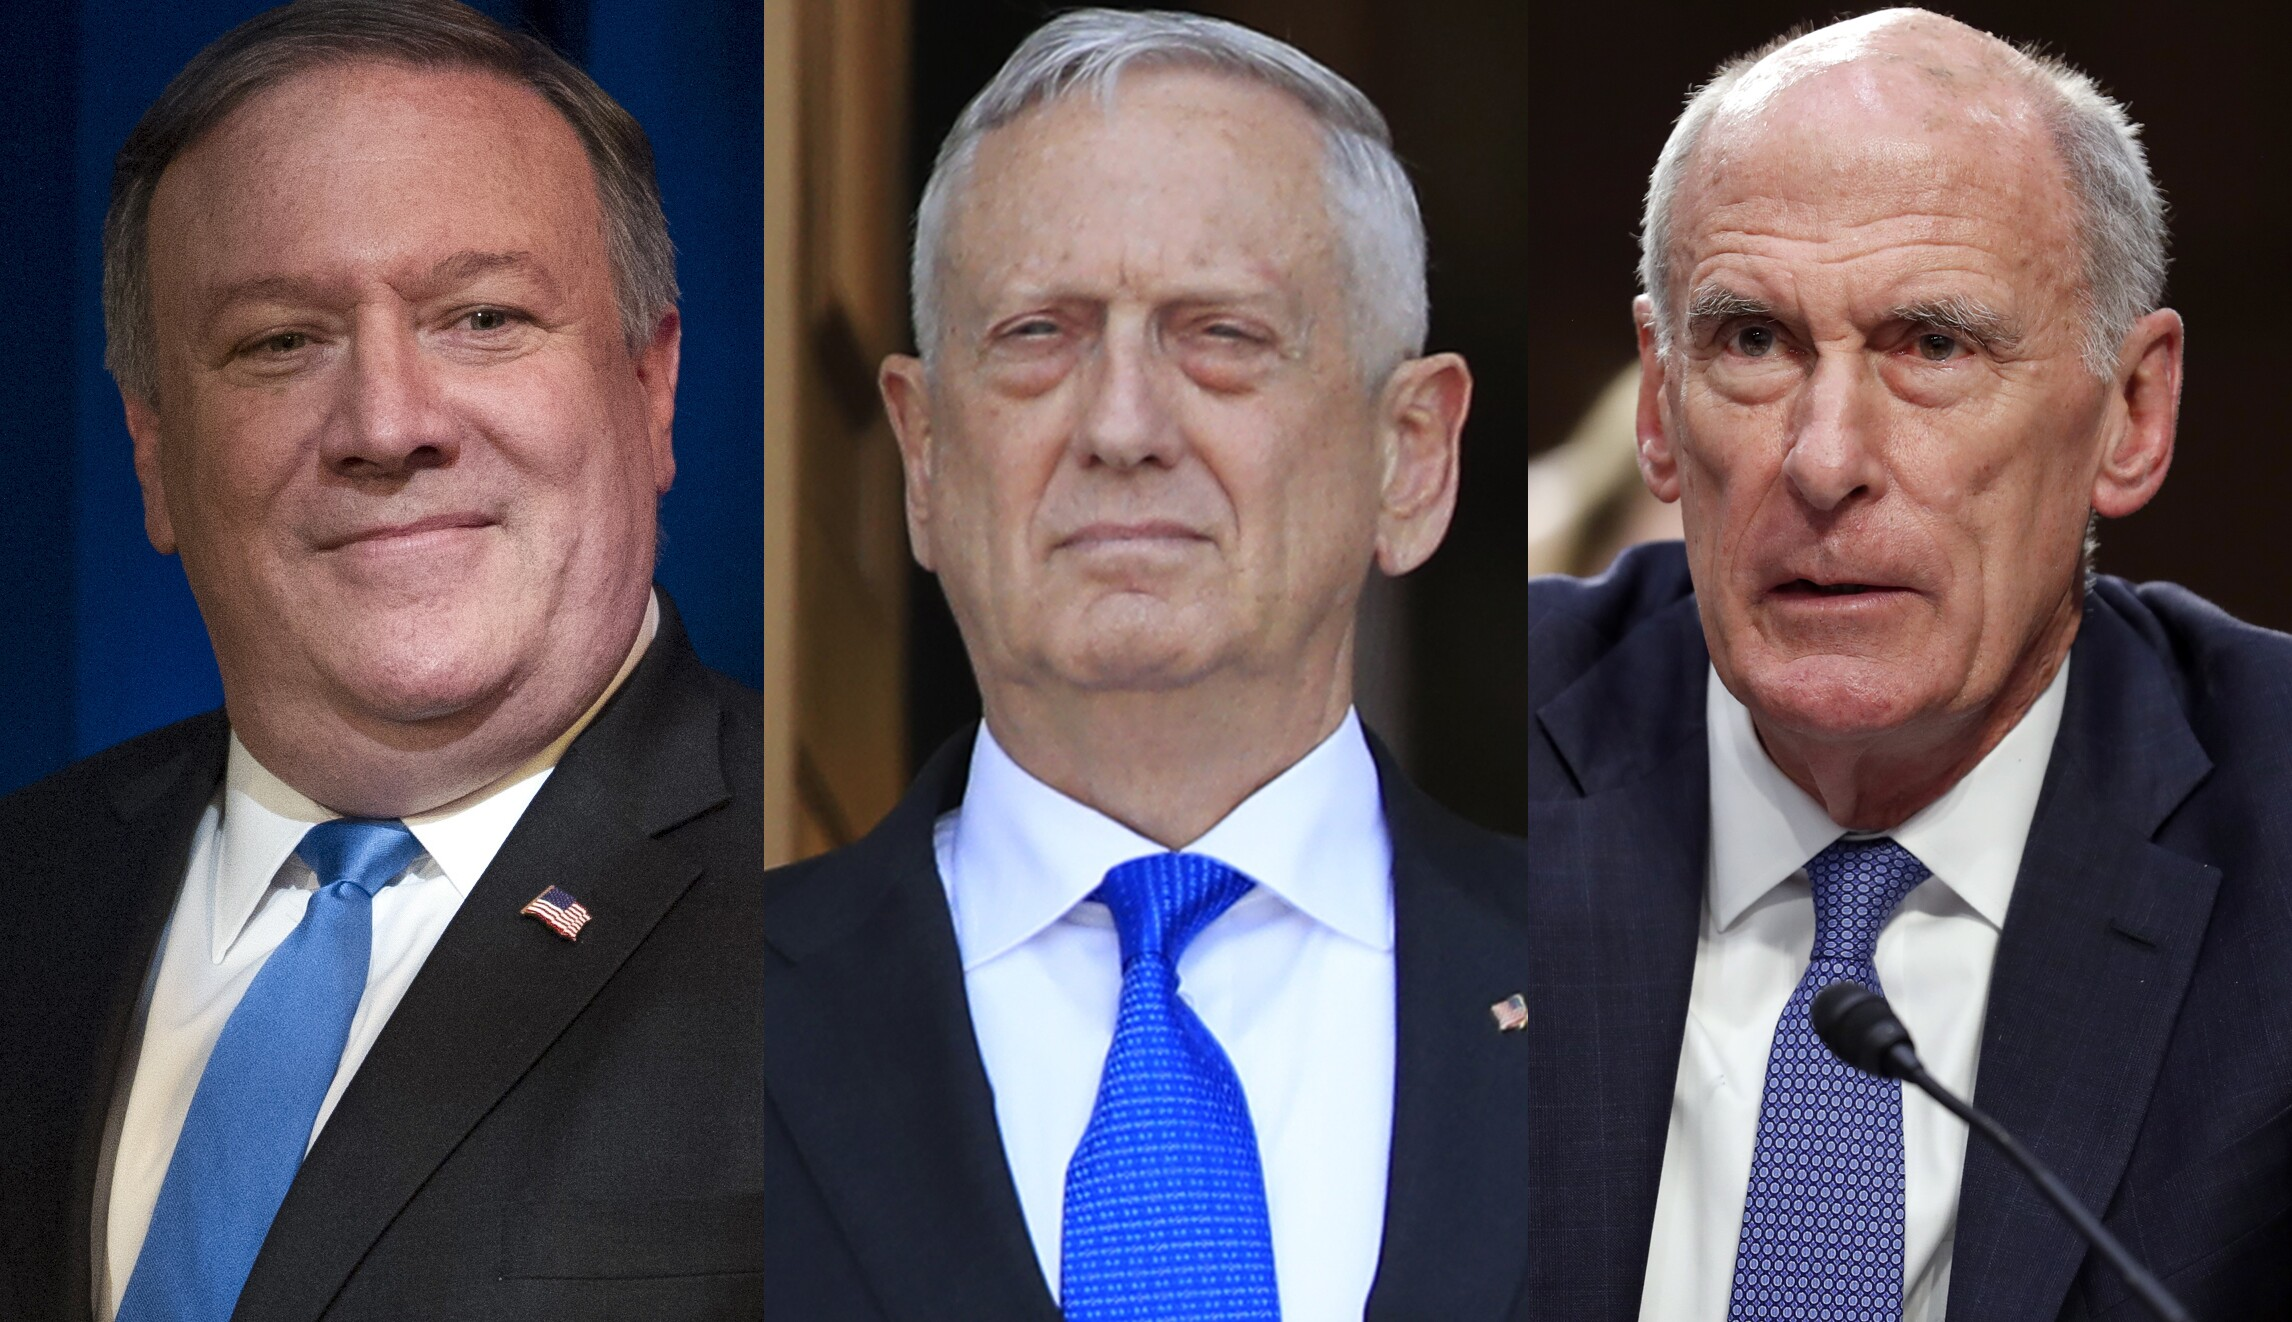 Mike Pompeo, Jim Mattis, and Dan Coats will head to the Hill as Yemen deadline approaches